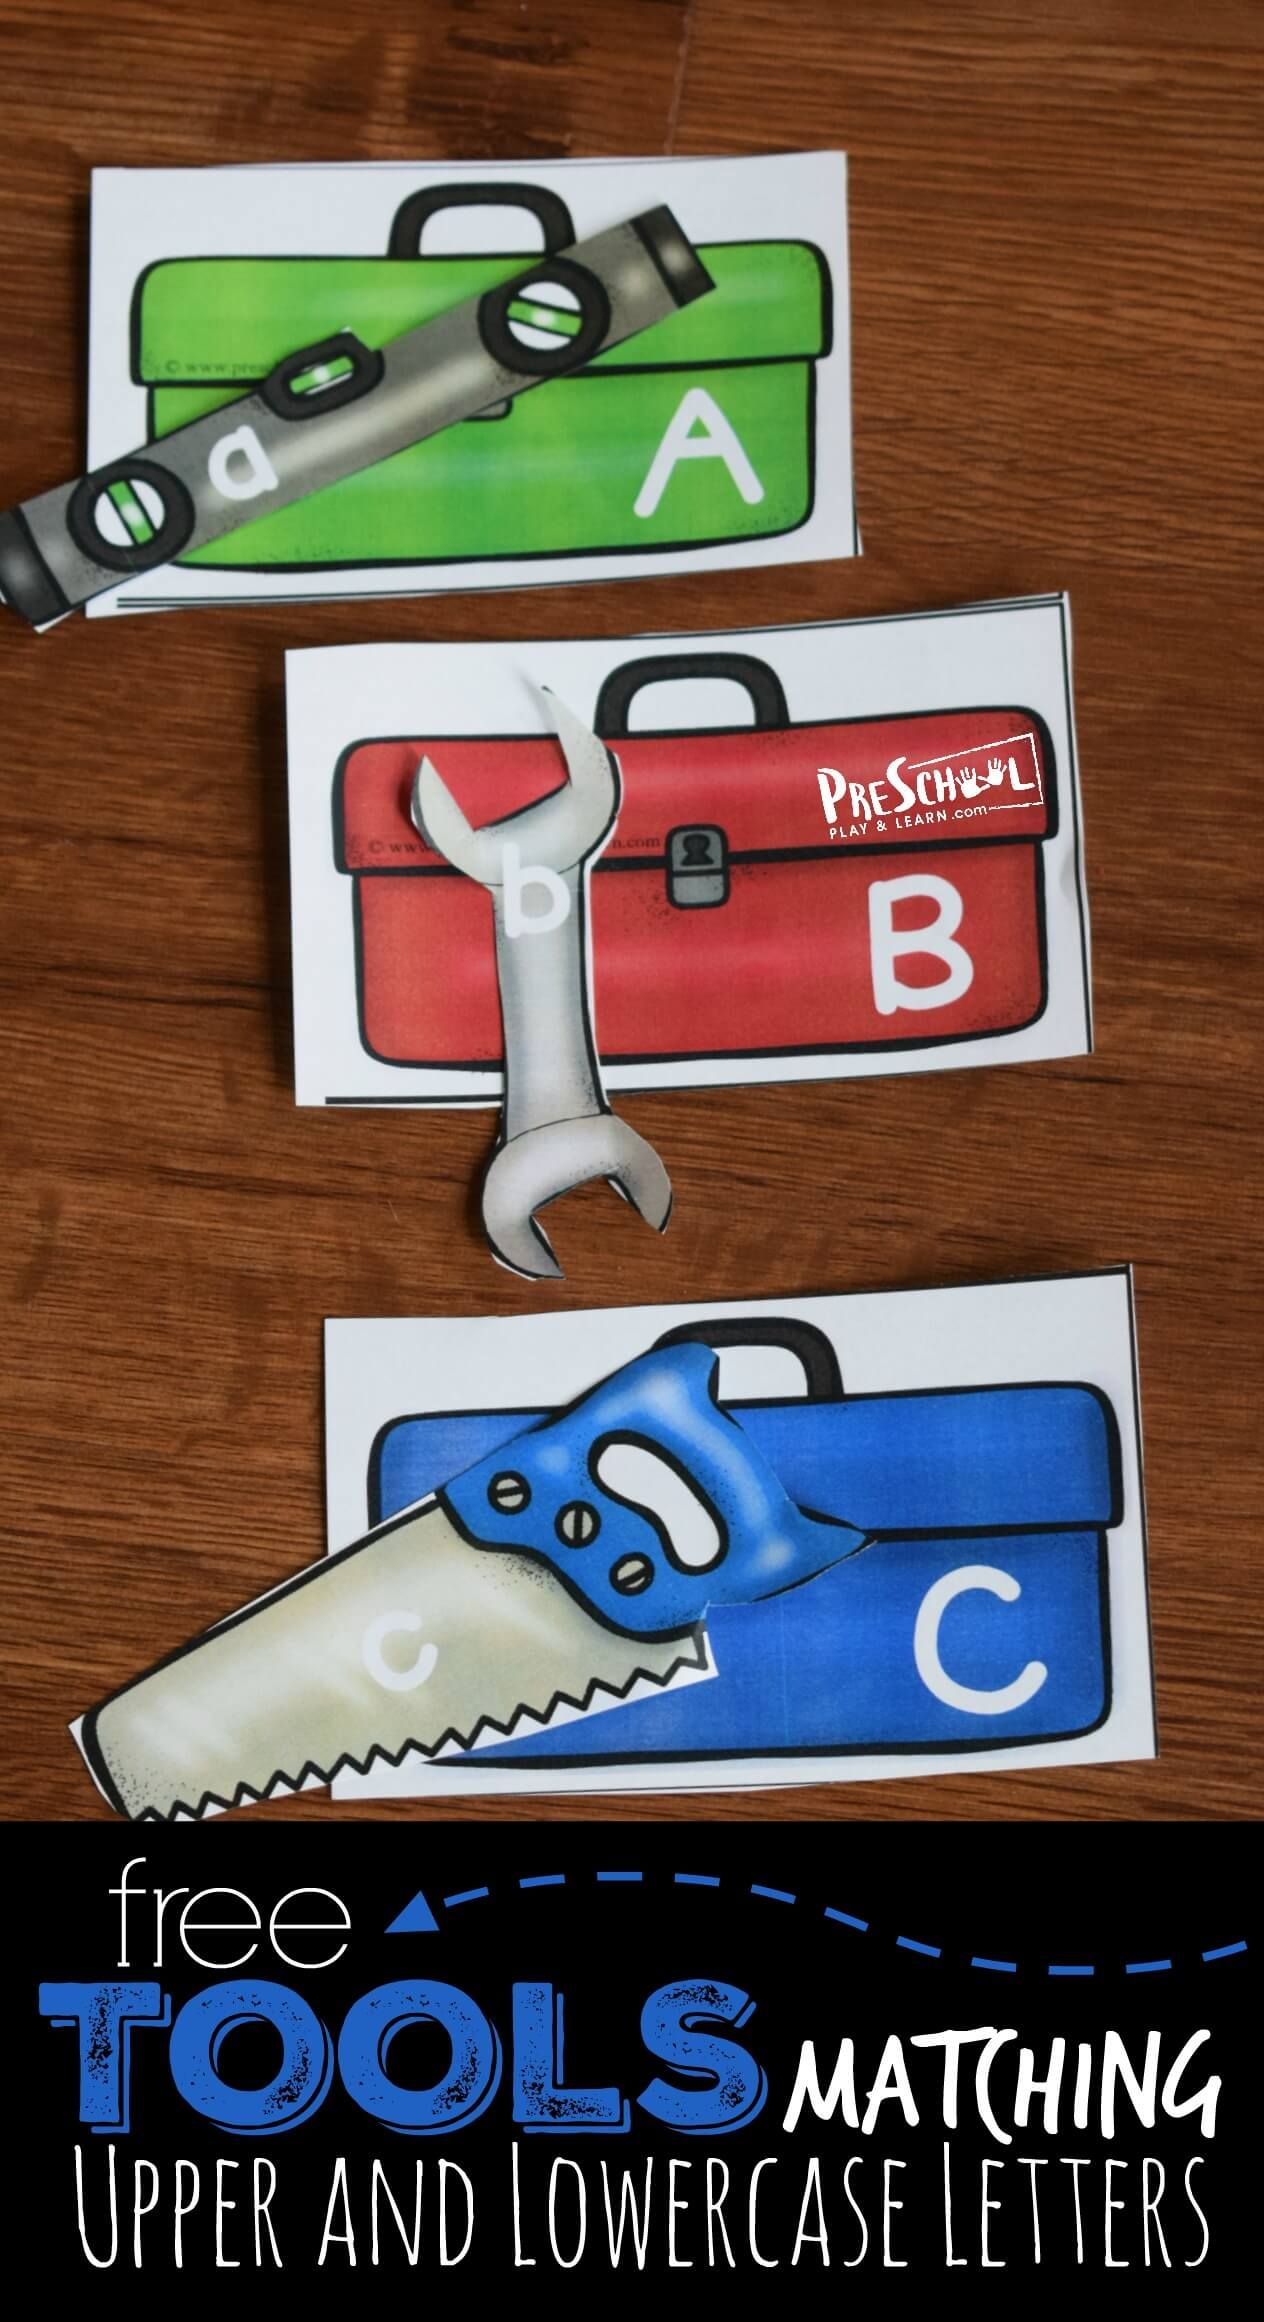 Tools Upper And Lowercase Letters Matching